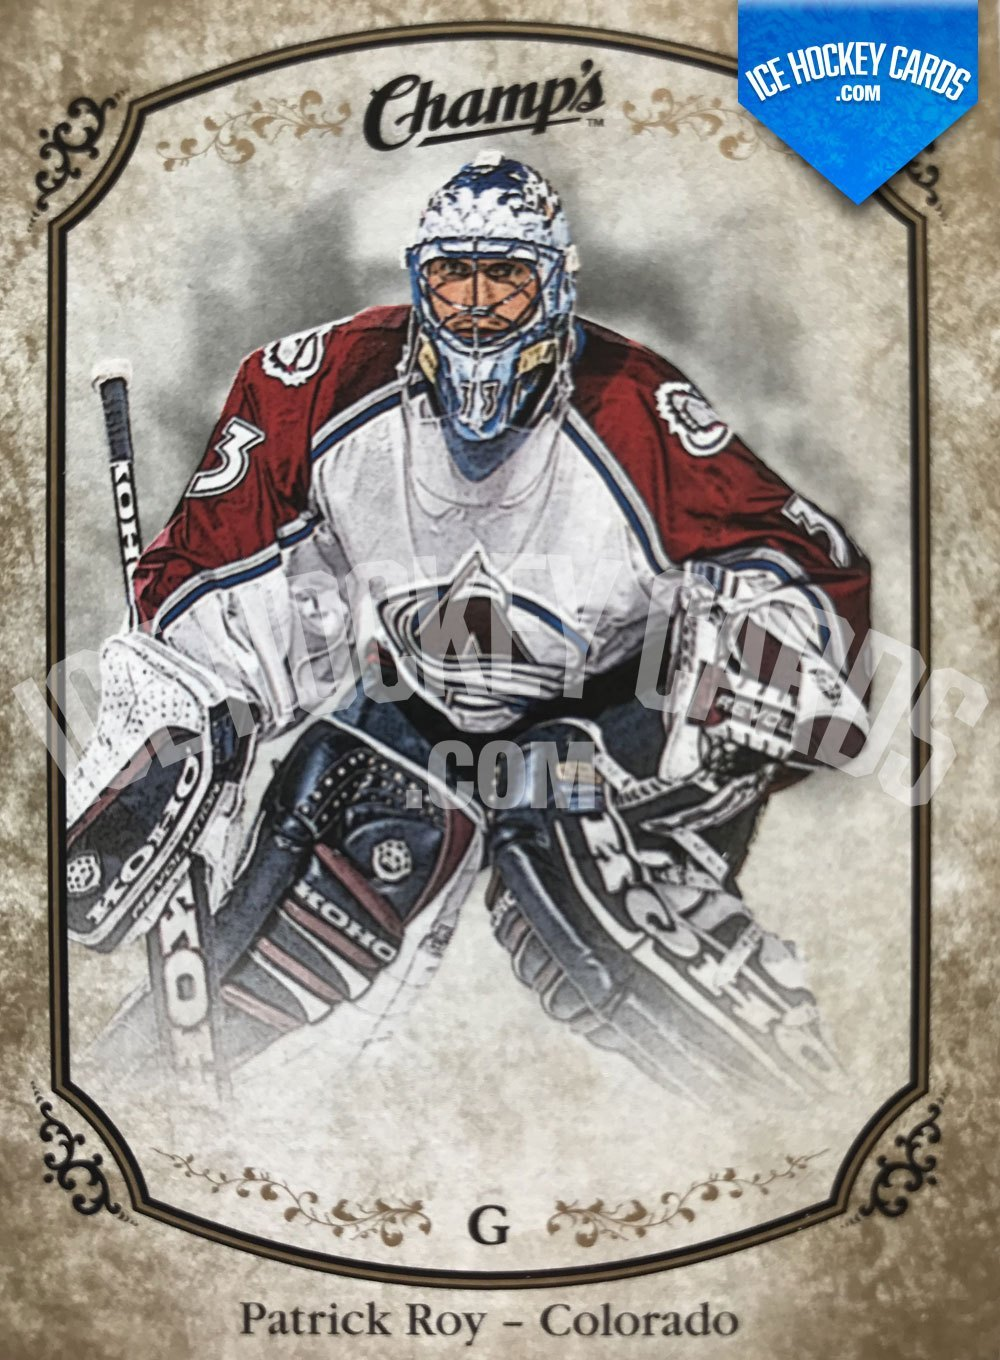 Upper Deck - Champs 15-16 - Patrick Roy Base Card